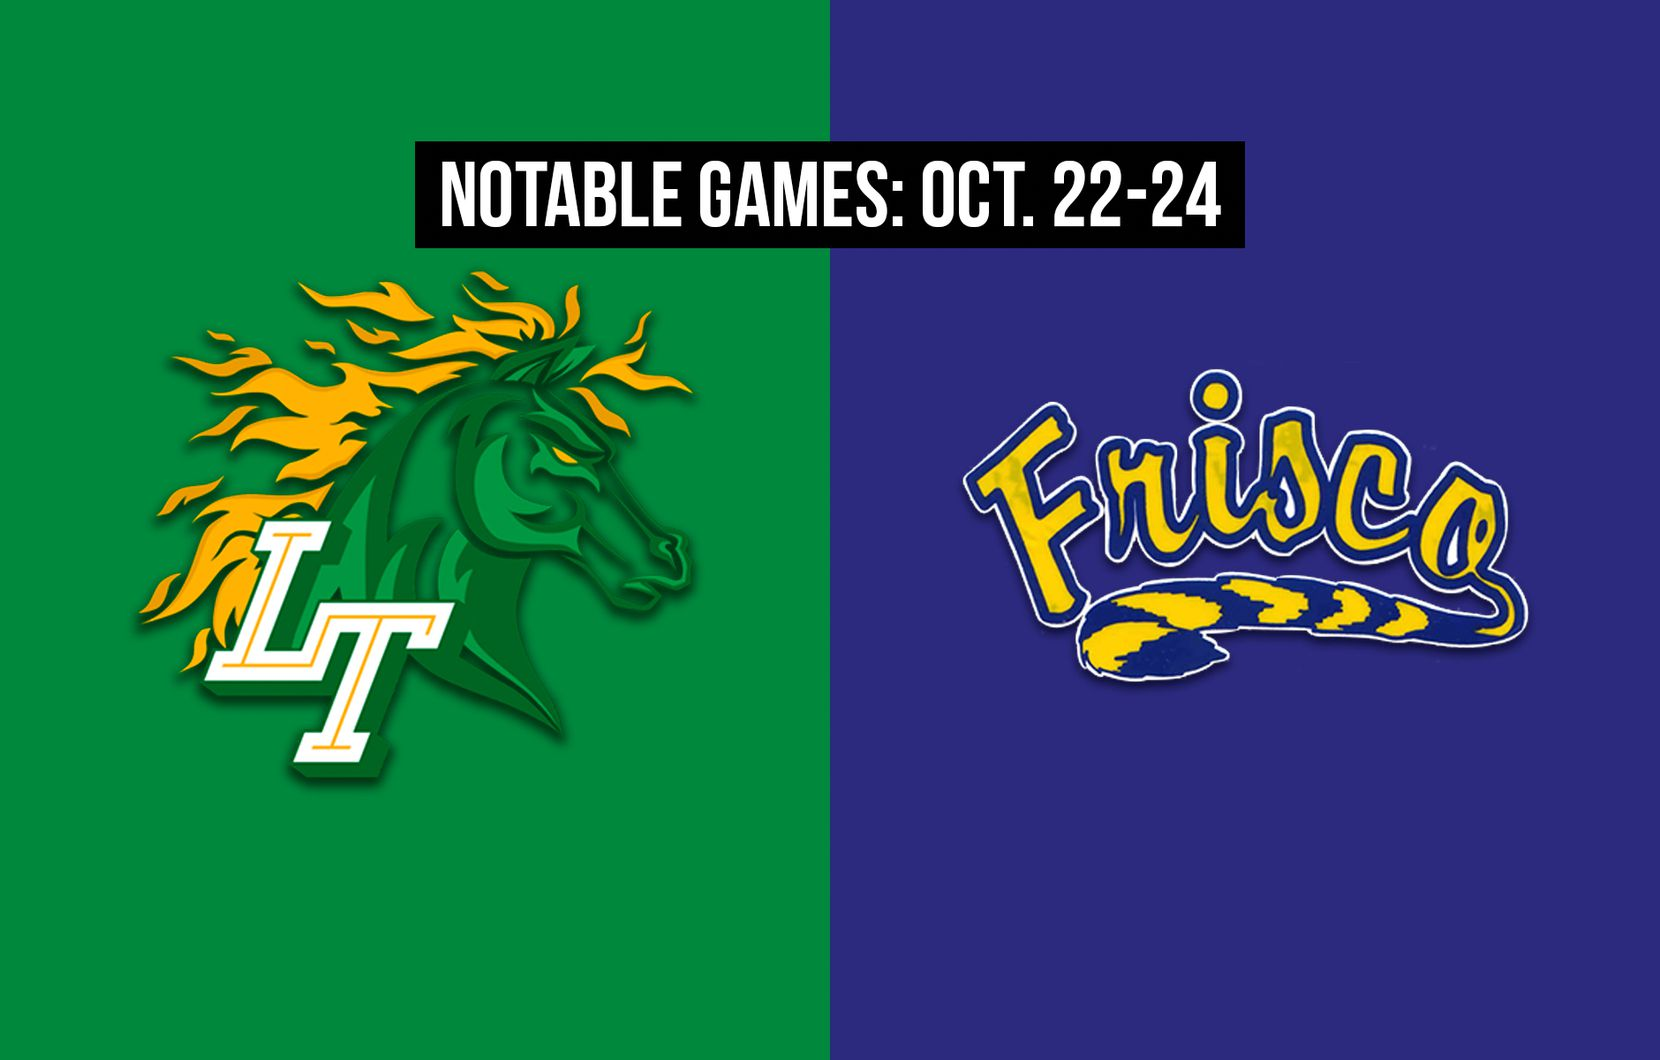 Notable games for the week of Oct. 22-24 of the 2020 season: Frisco Lebanon Trail vs. Frisco.